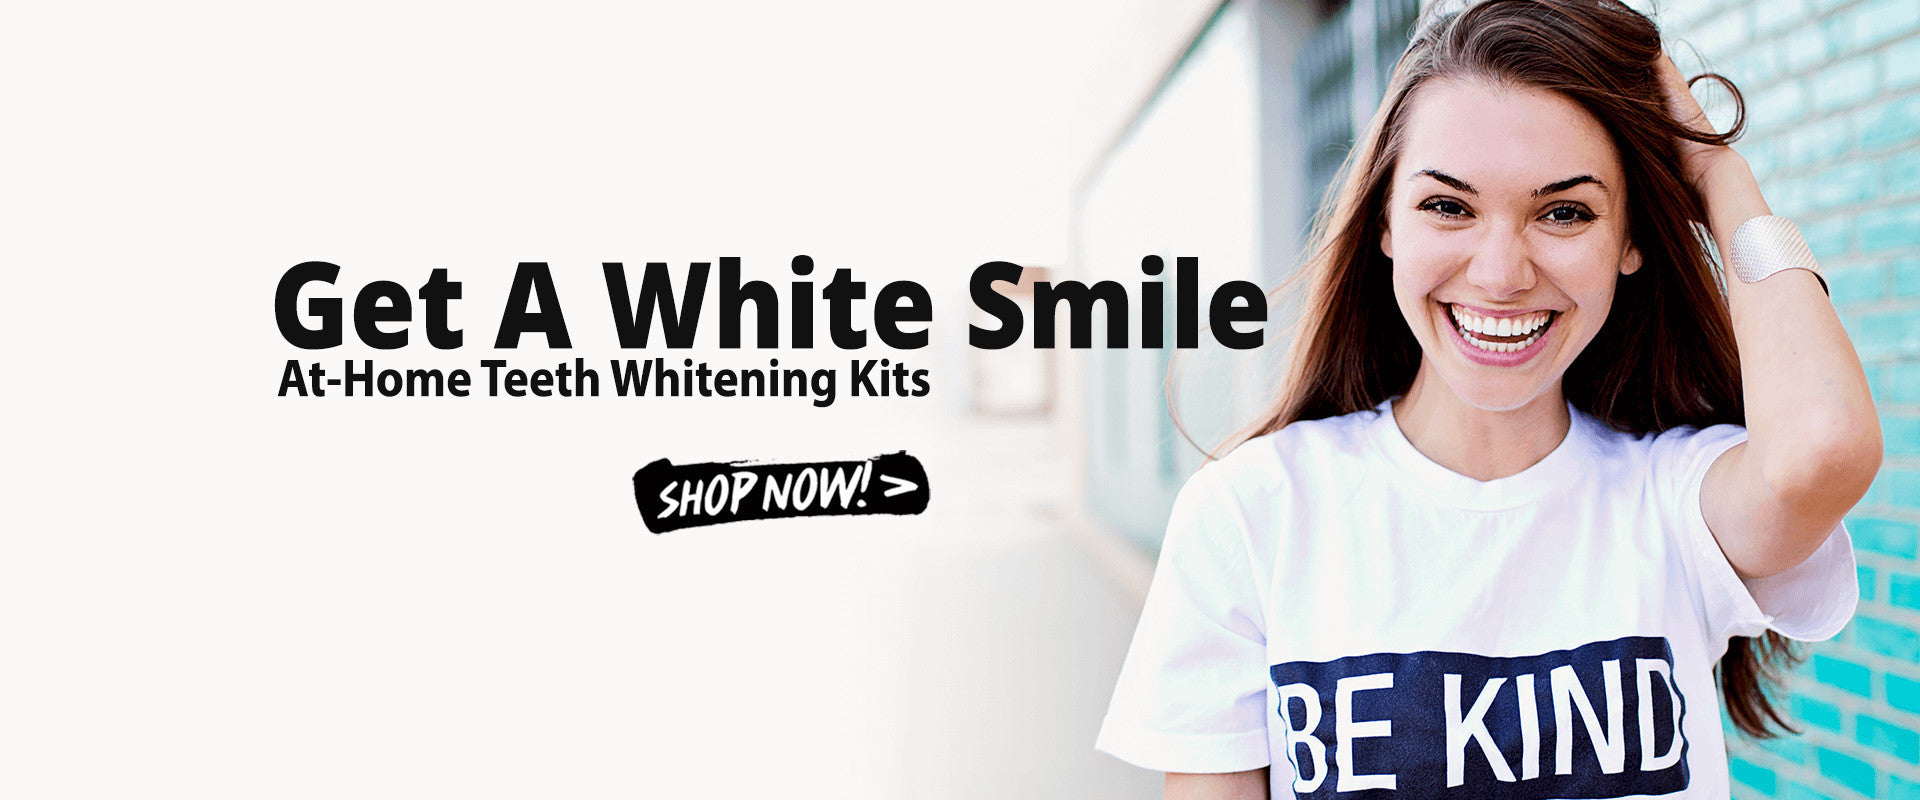 Teeth Whitening Kits by Love My Teeth